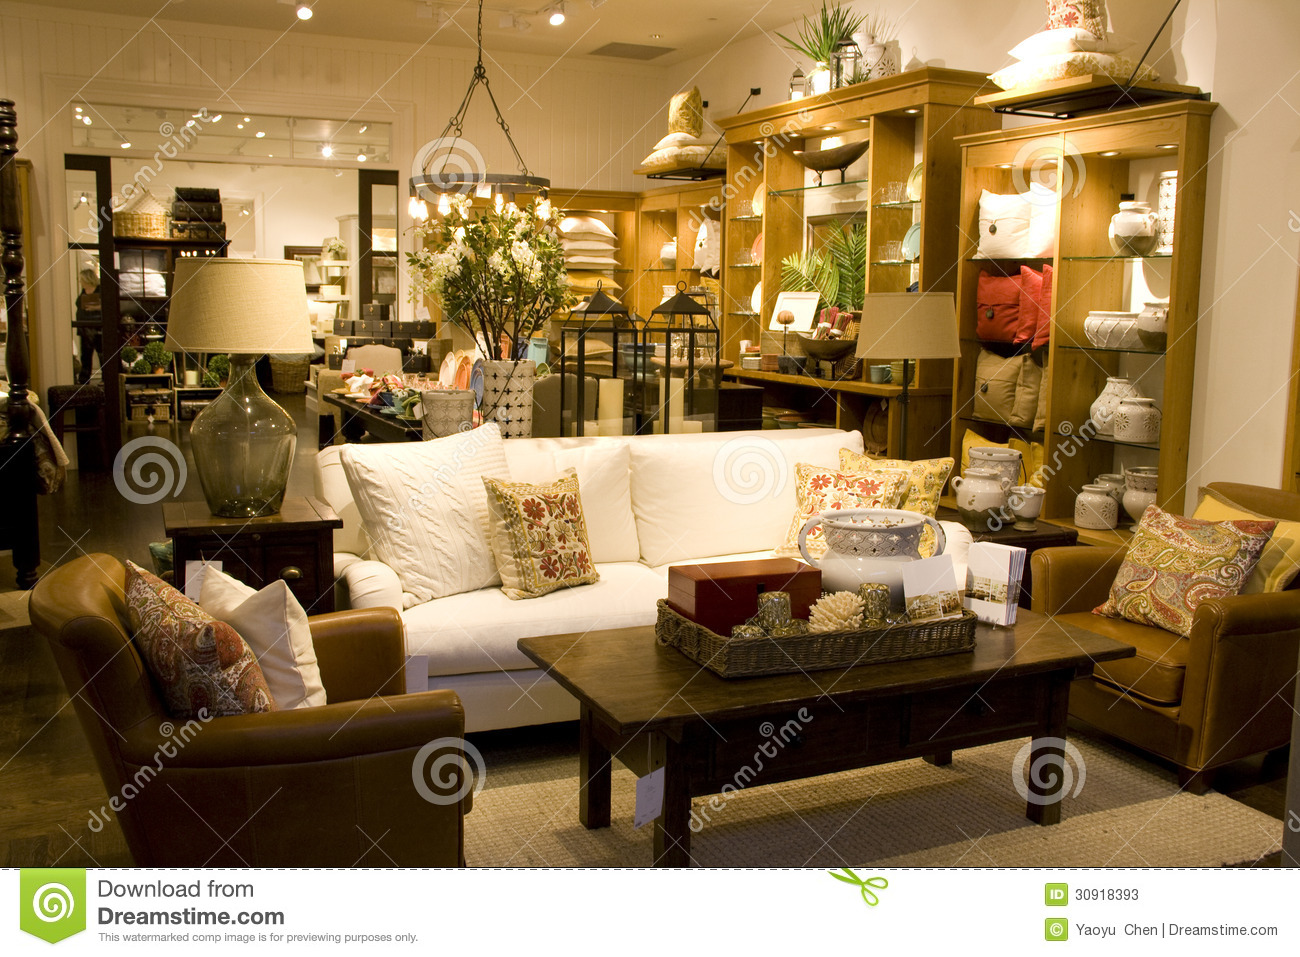 Furniture and home decor store stock image image 30918393 for Home design furniture store